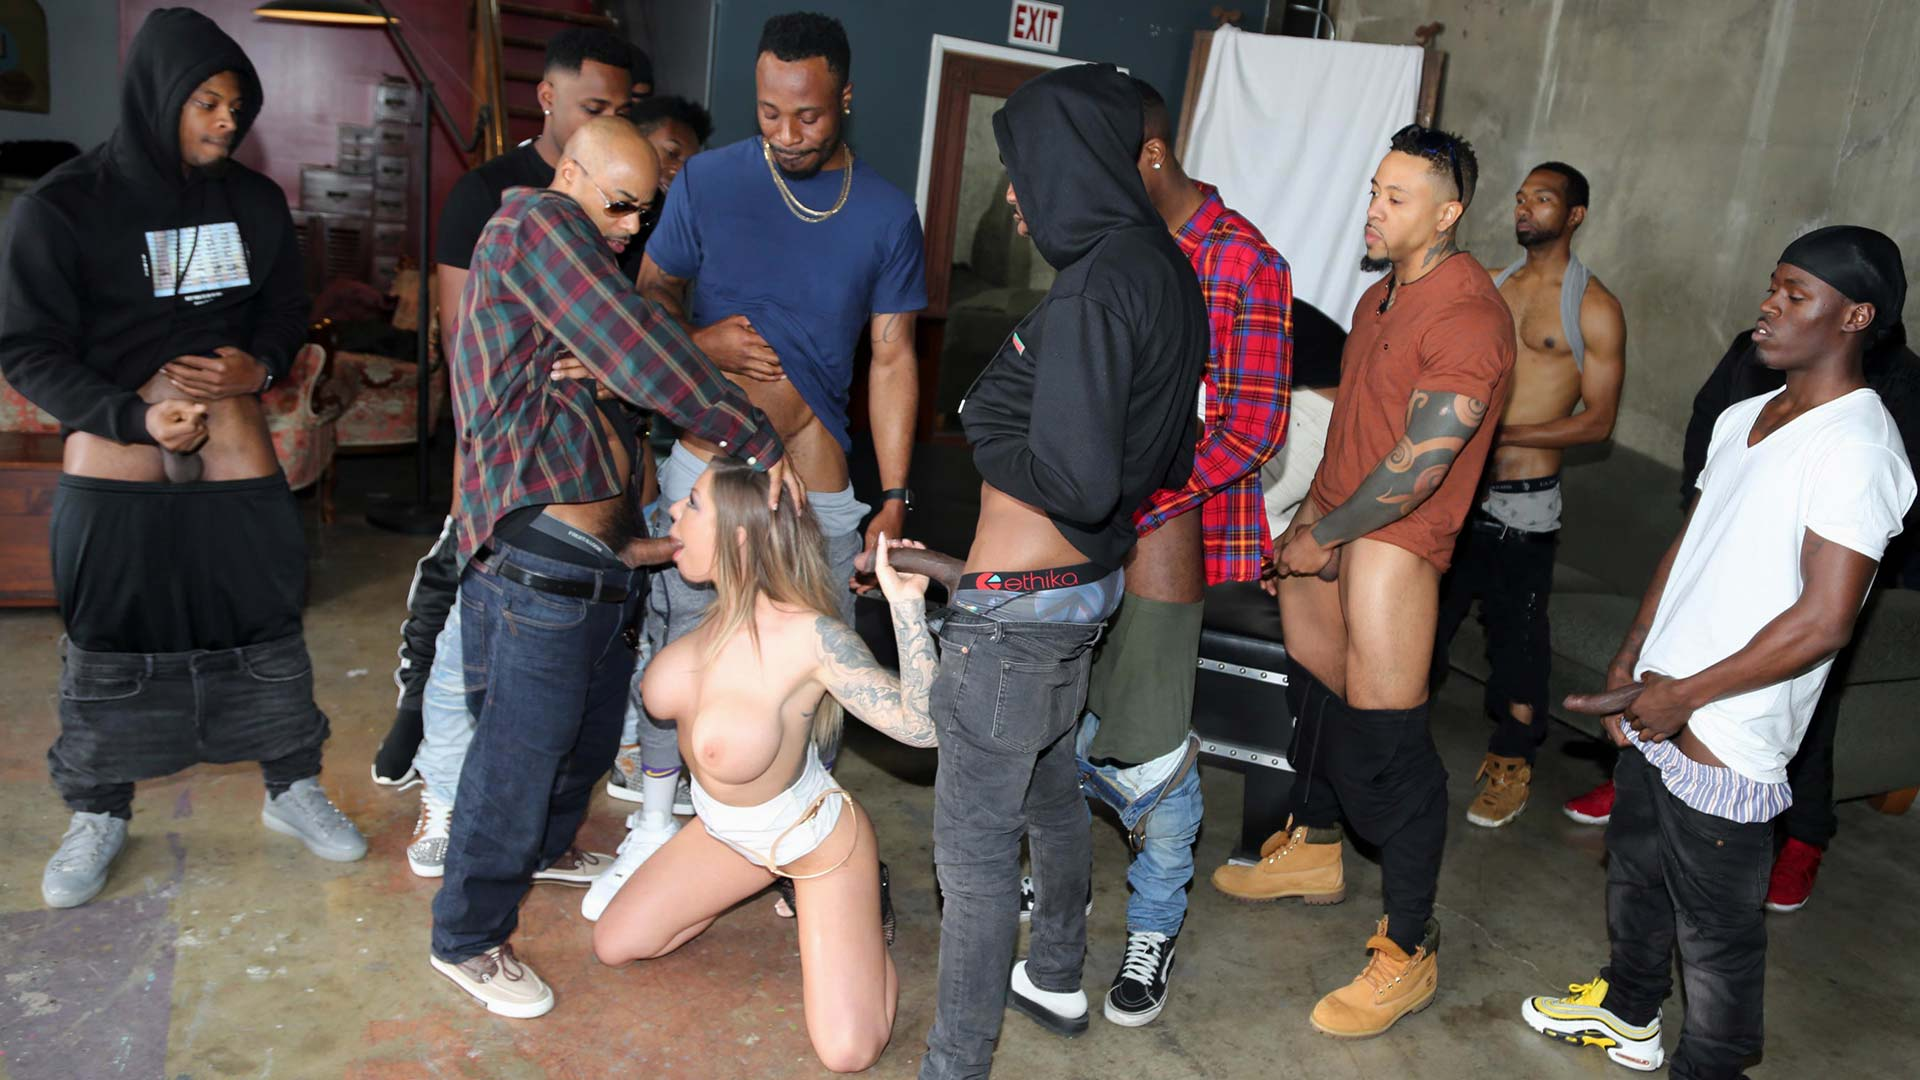 InterracialBlowbang Karma Rx Interracial Porn